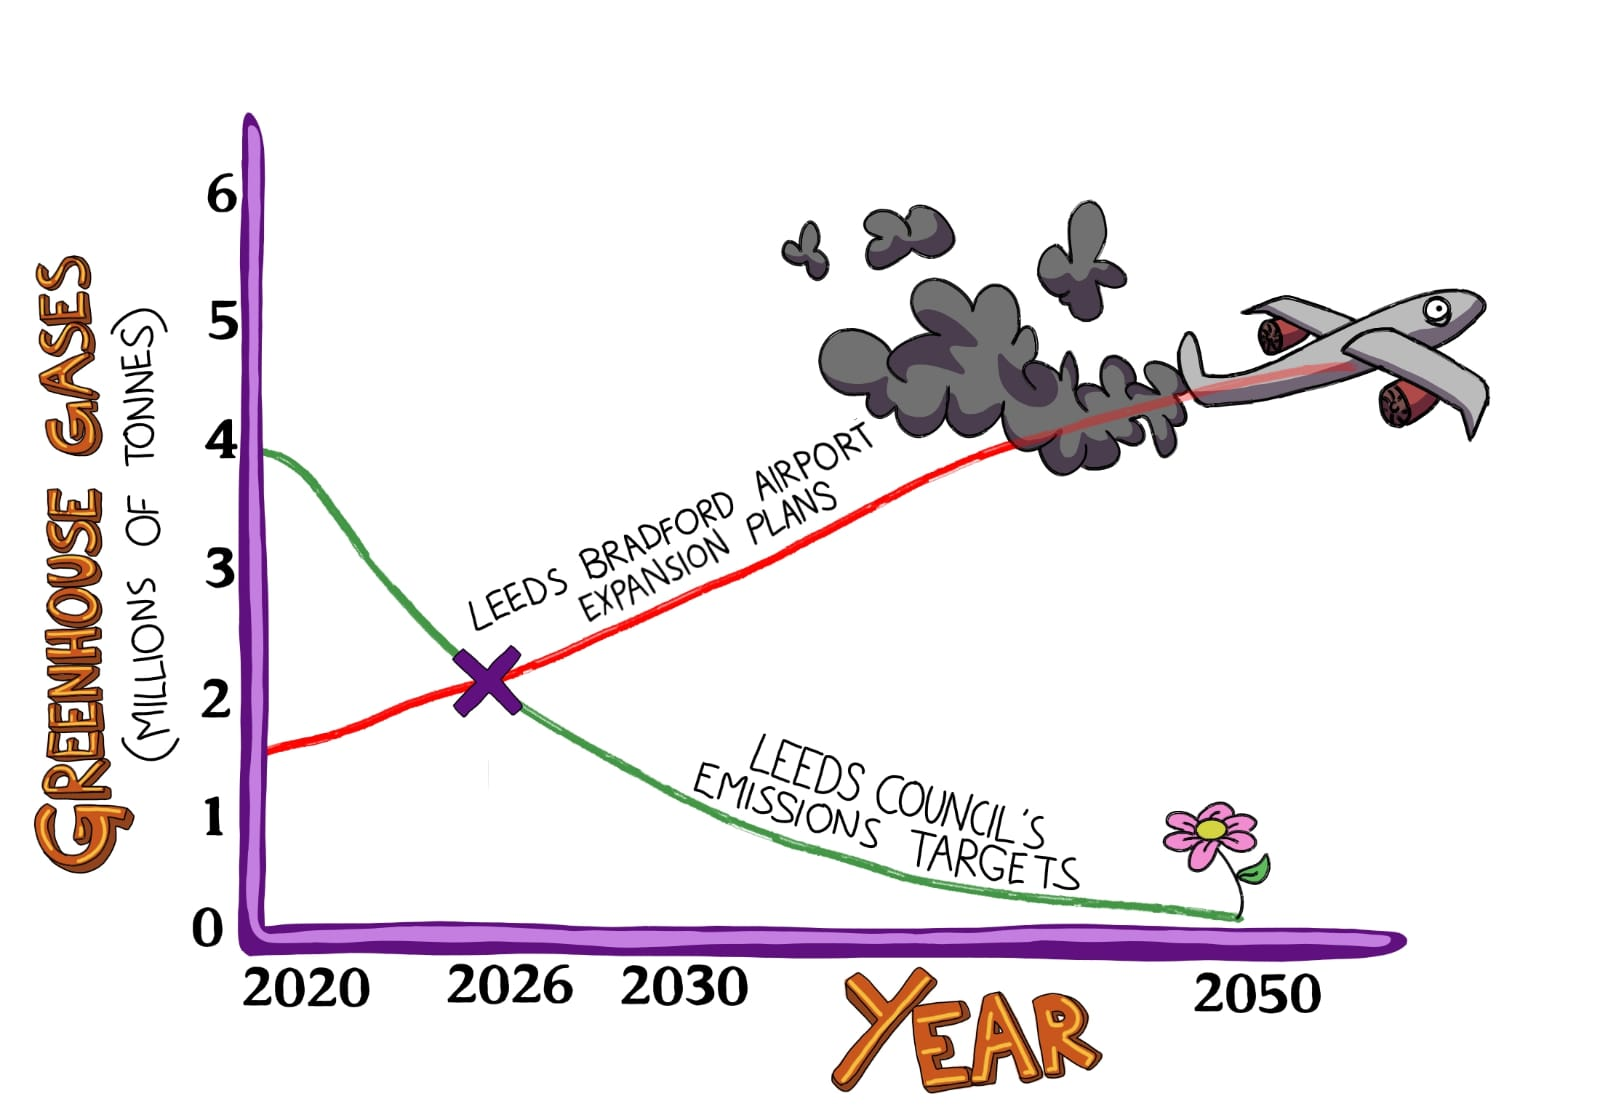 Chart states that the greenhouse gases from Leeds Bradford airport exceed Leeds council targets for emissions reduction